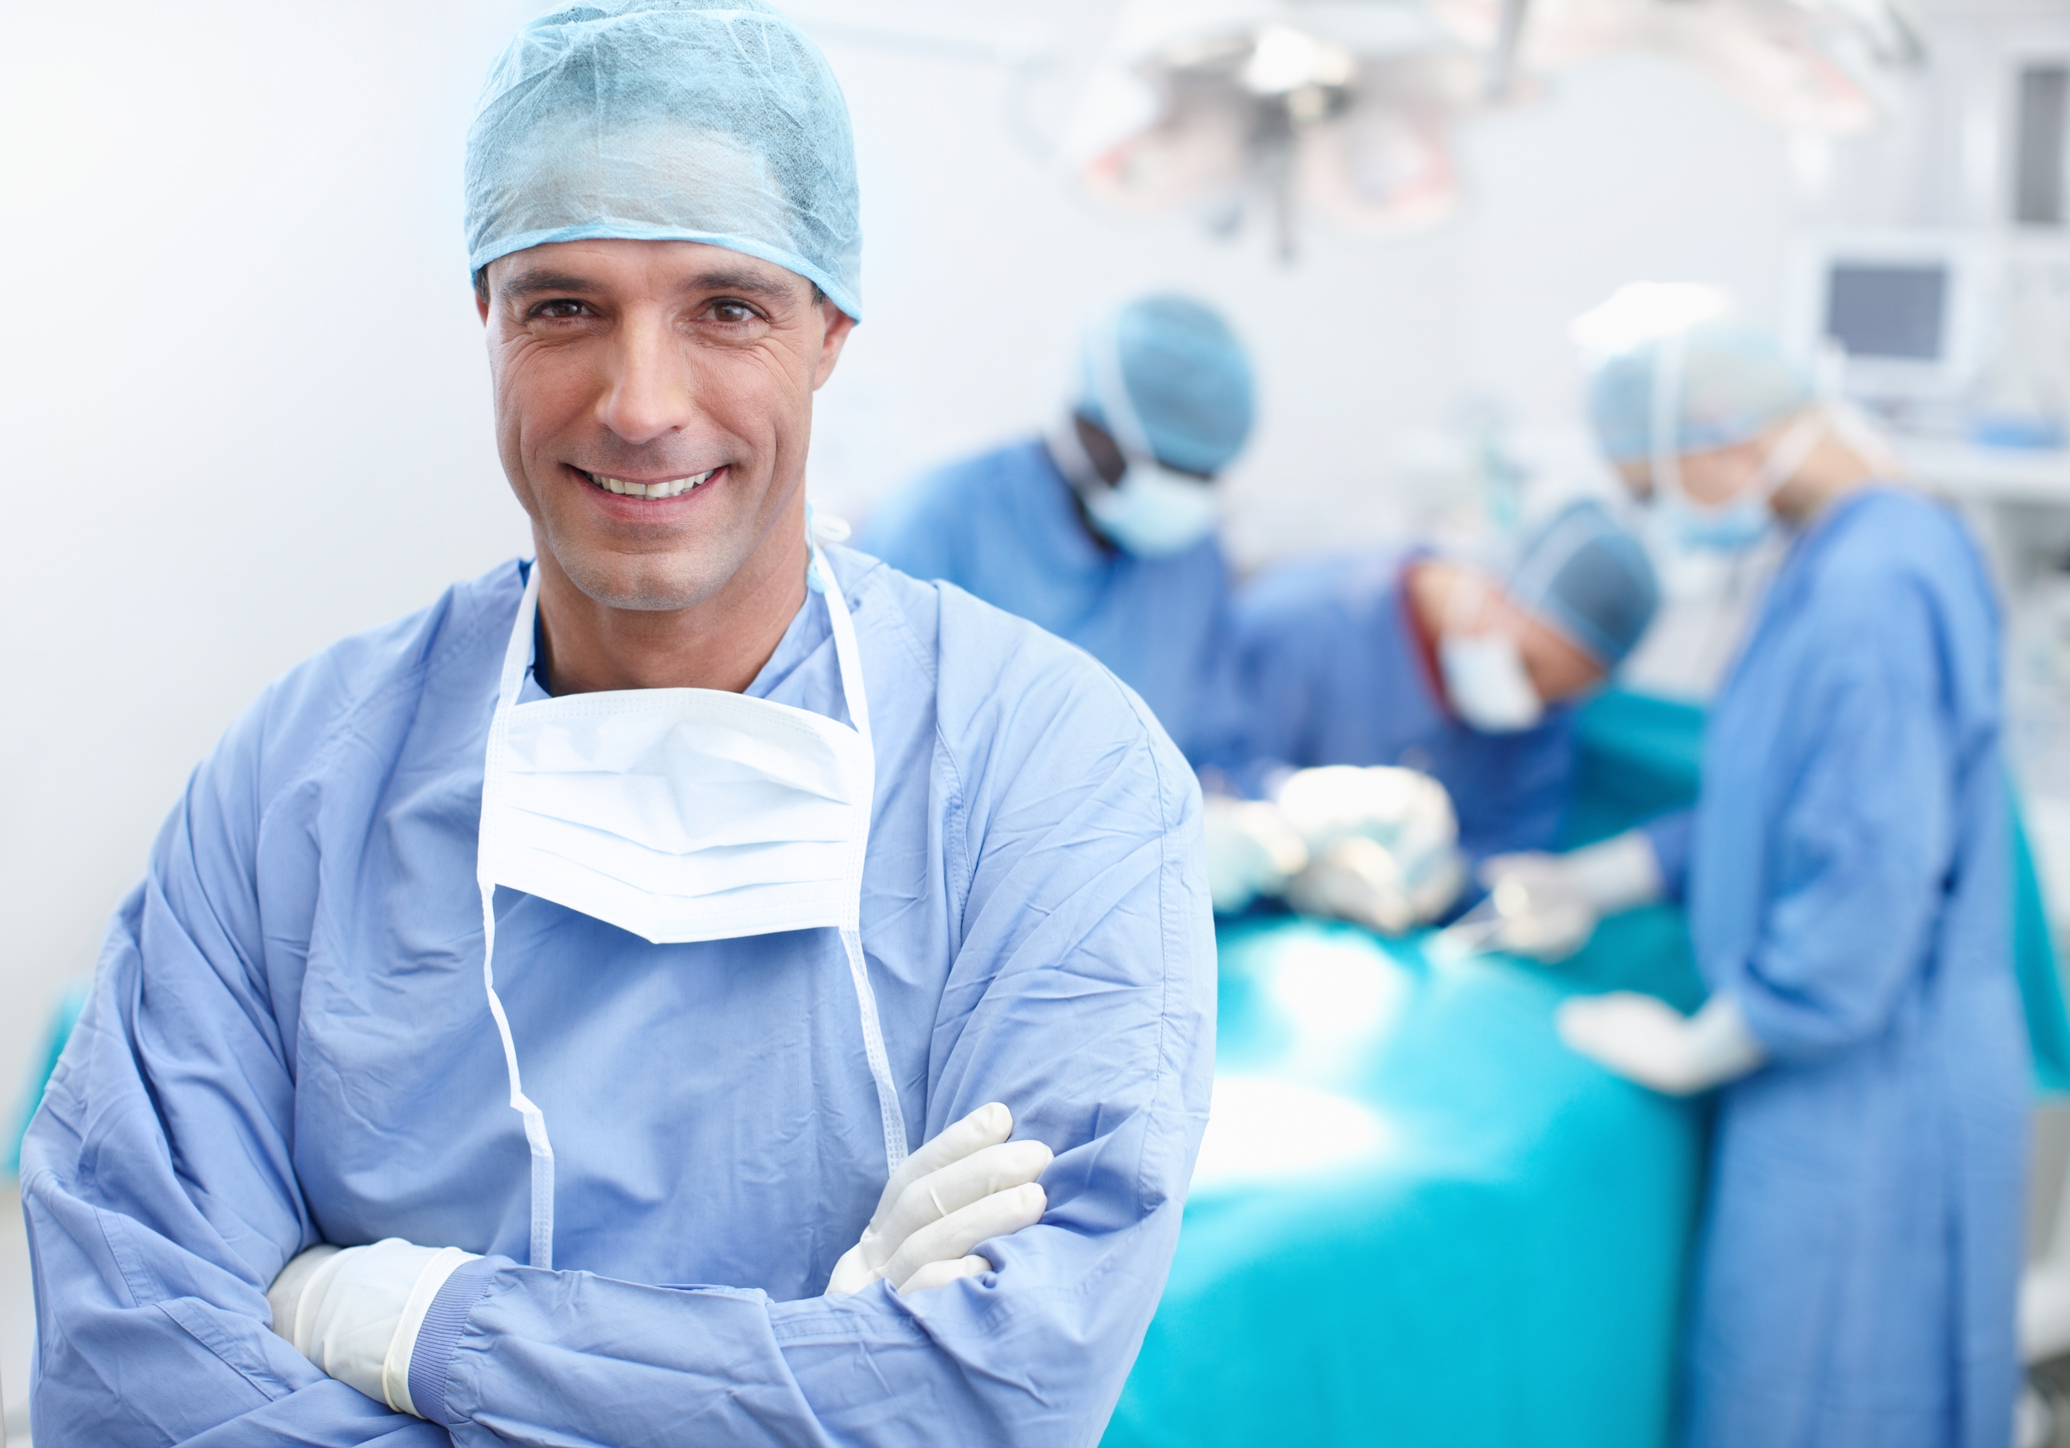 surgeon Education - Contact us about orthopedic surgery medical education opportunities.